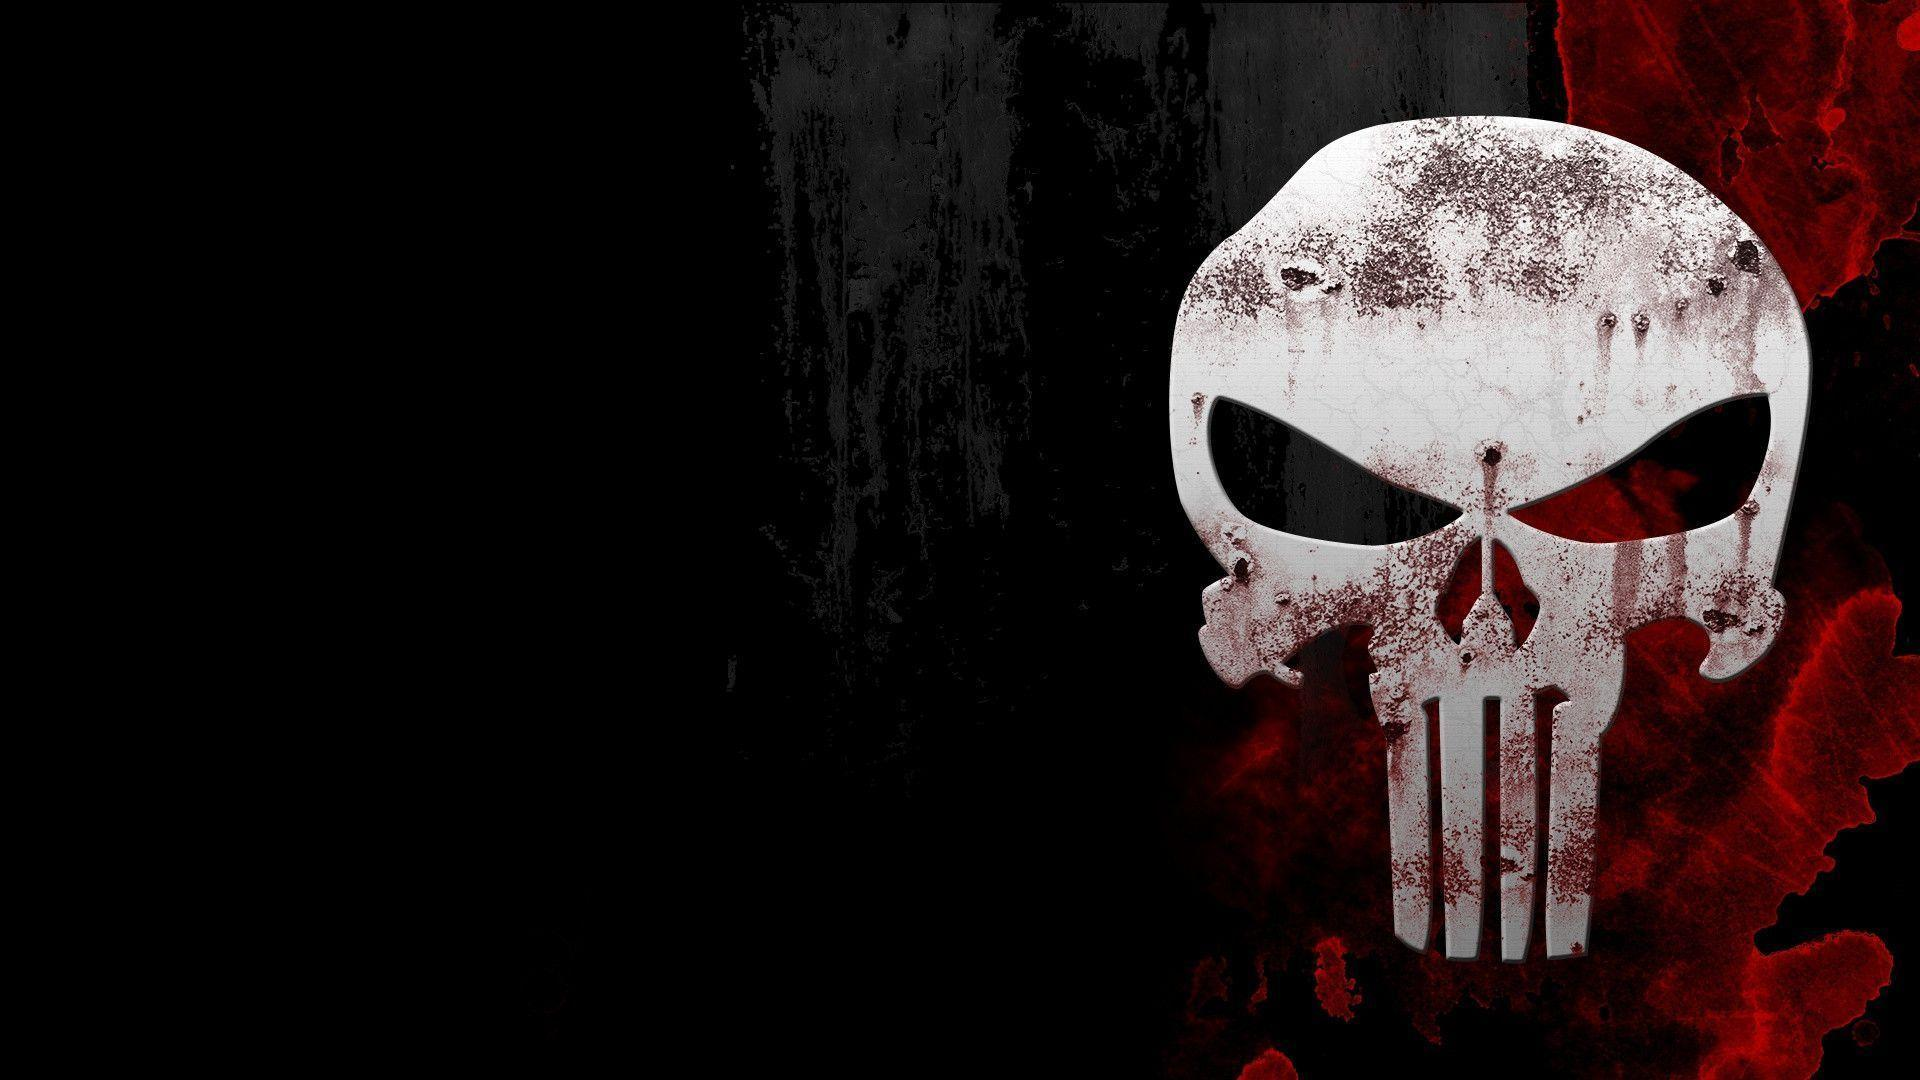 Hd Skull Wallpapers Top Free Hd Skull Backgrounds Wallpaperaccess